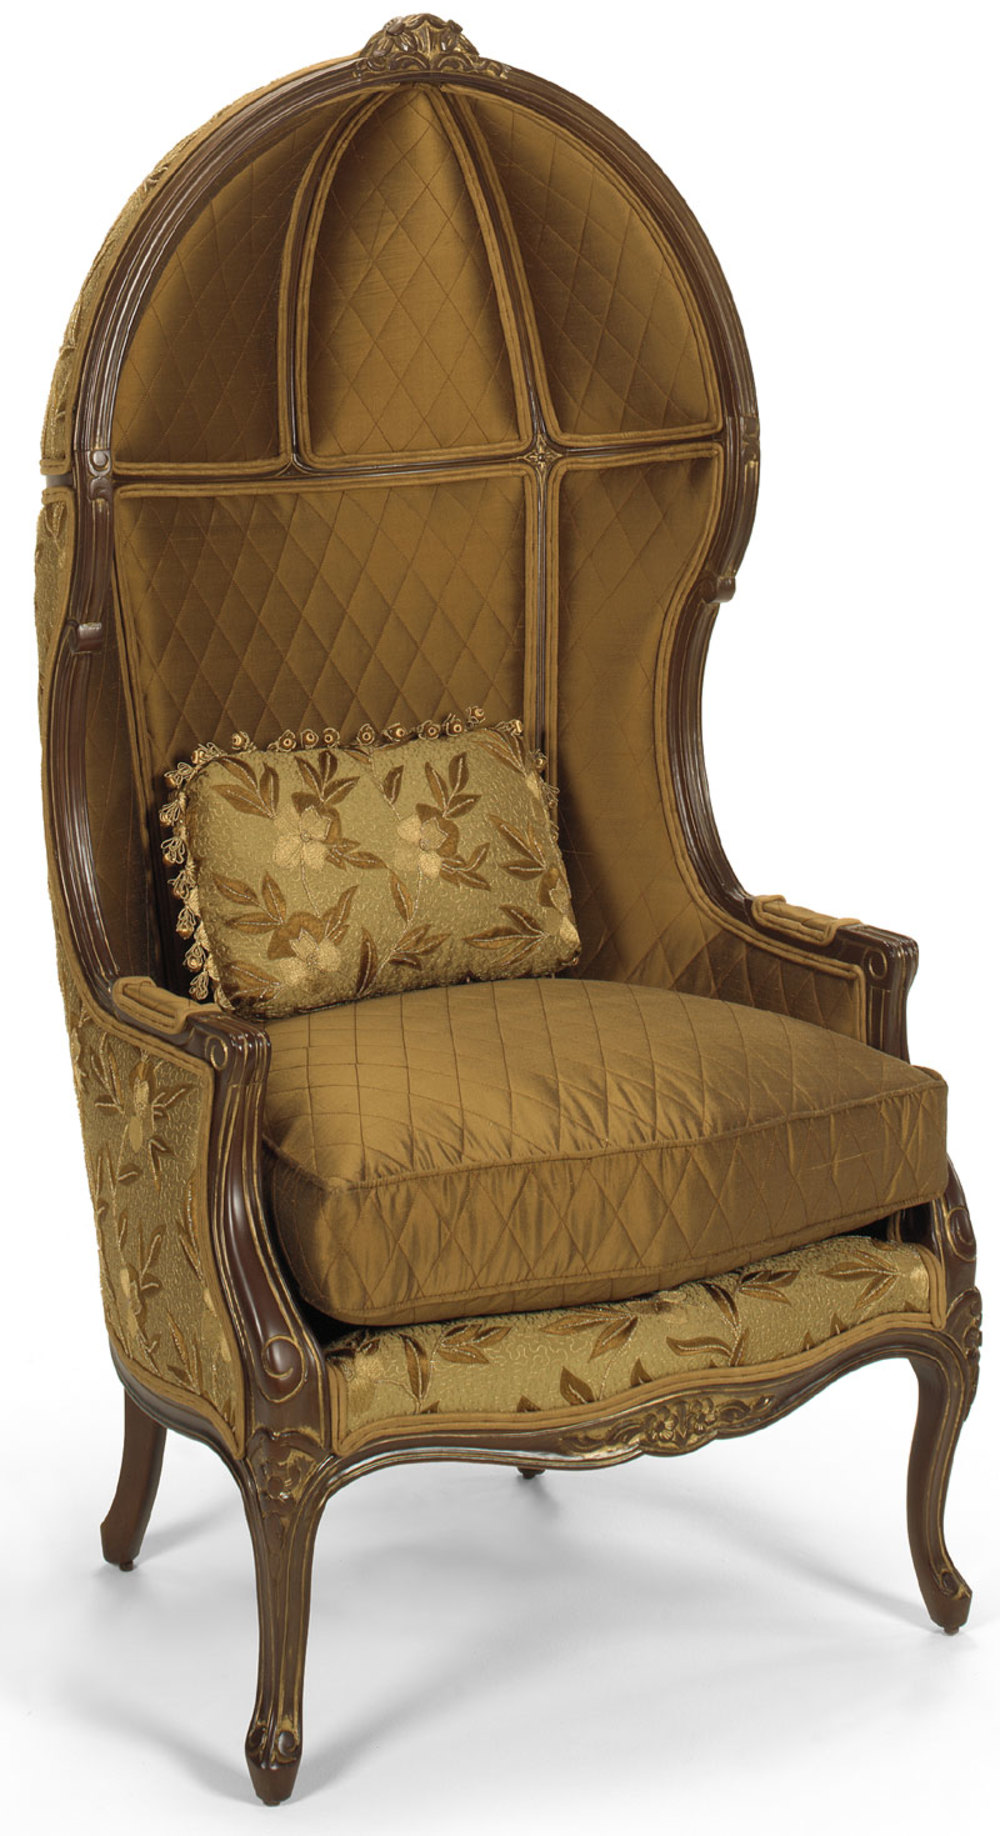 Parker Southern - Hanna Chair